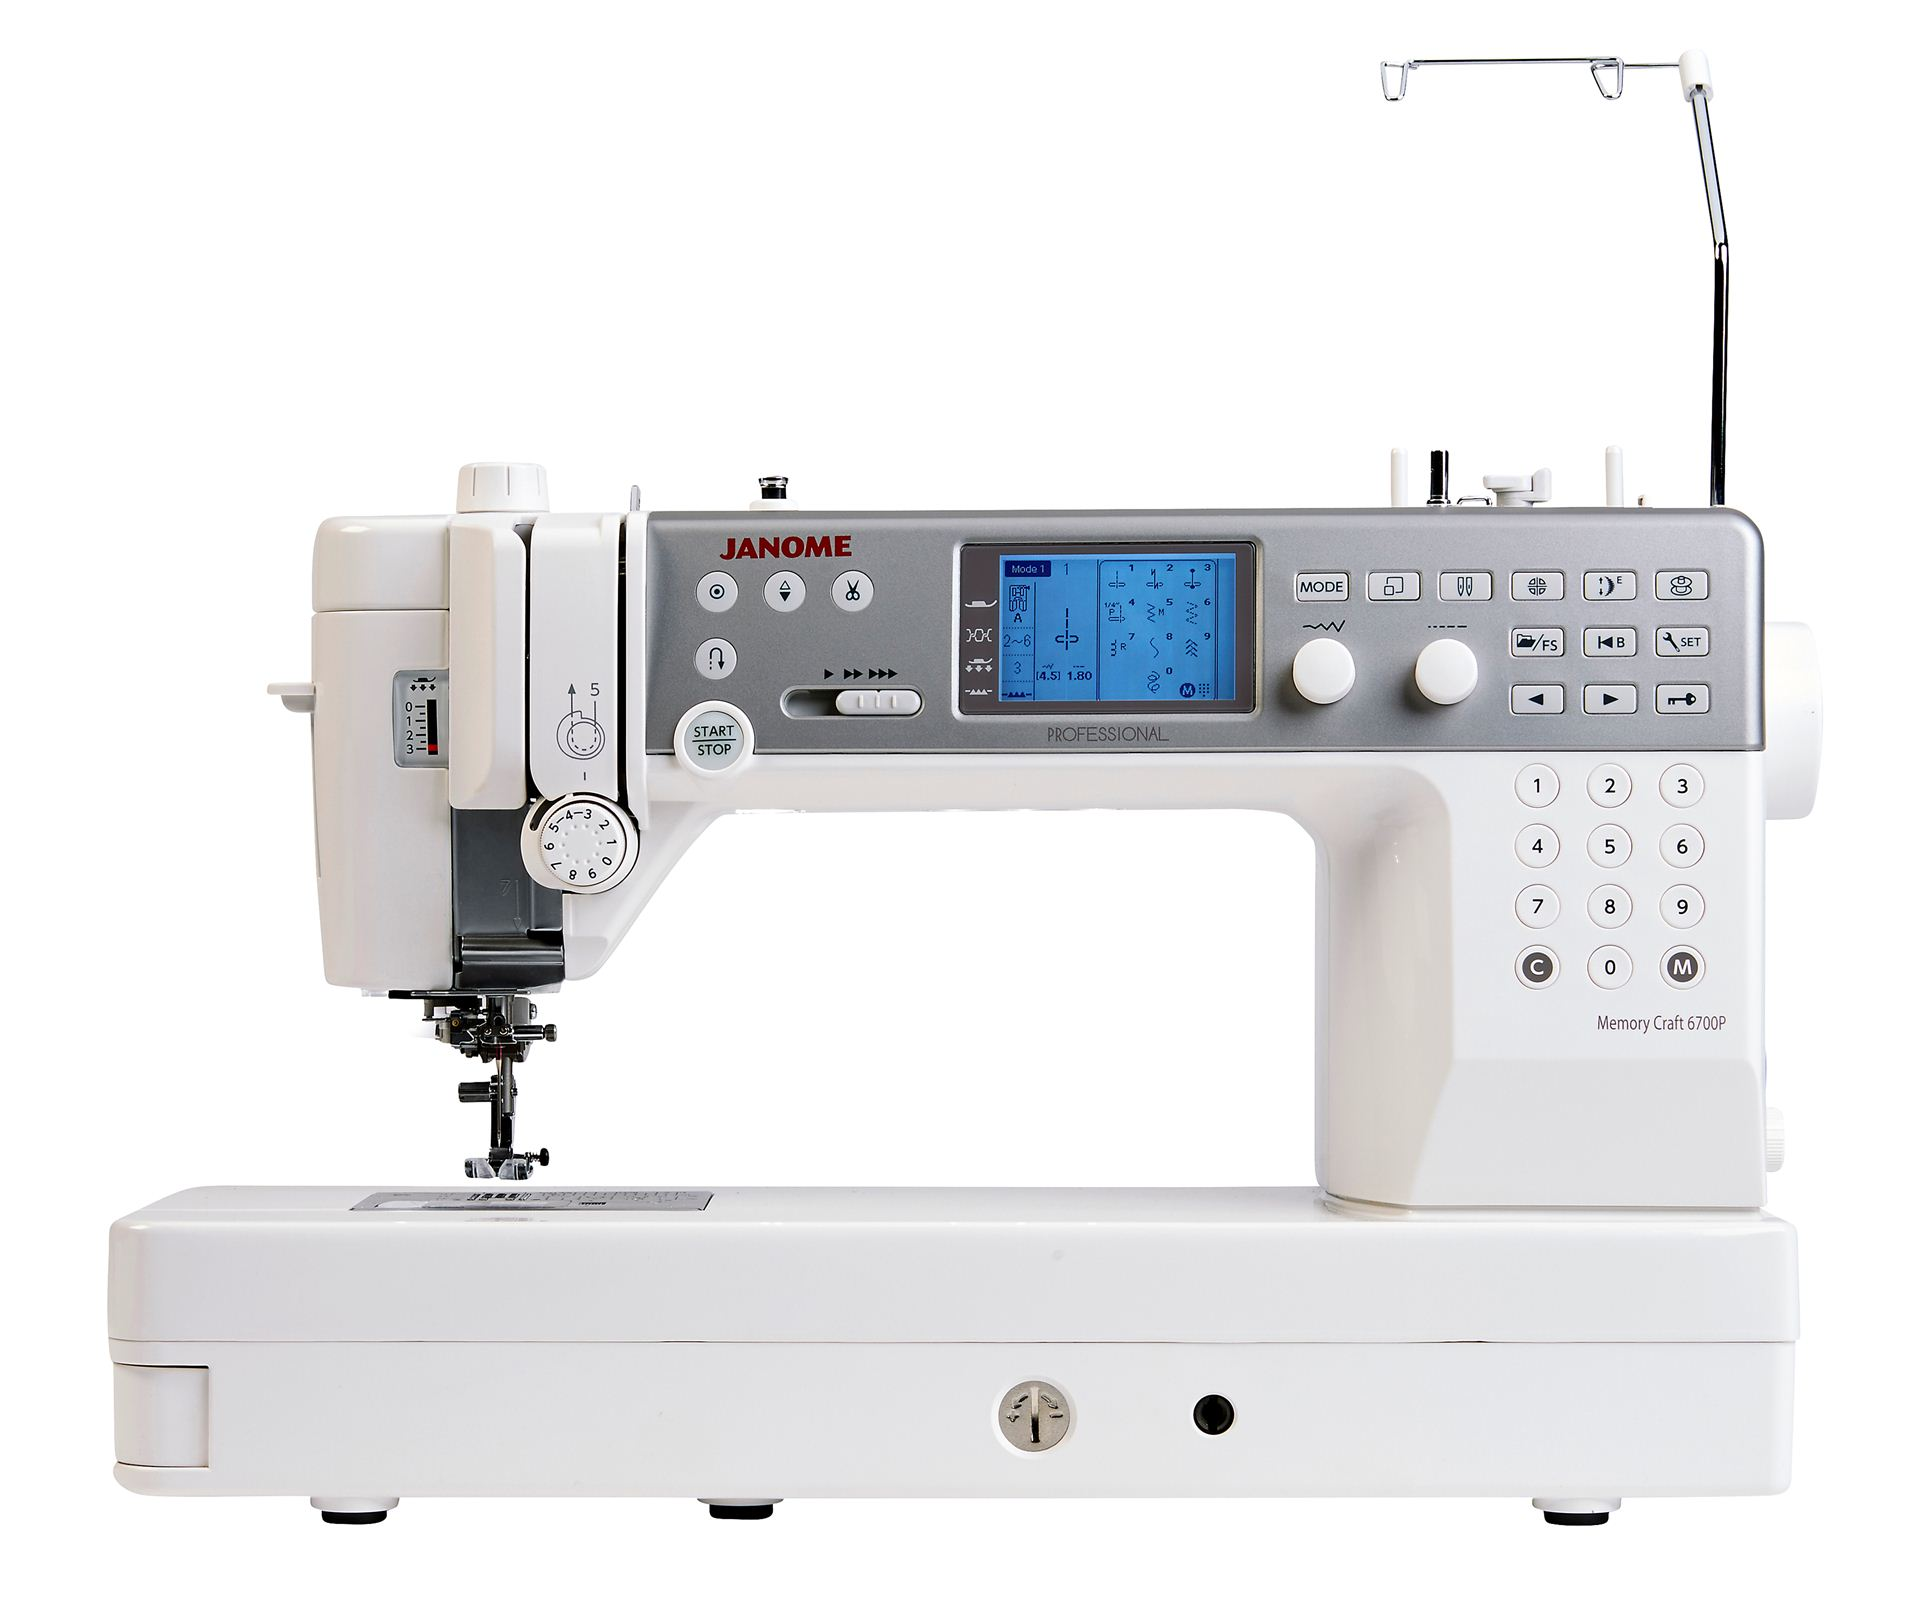 p quilt sewing res inflow computerized global content janome inflowcomponent s cancel mod machine quilting ebay